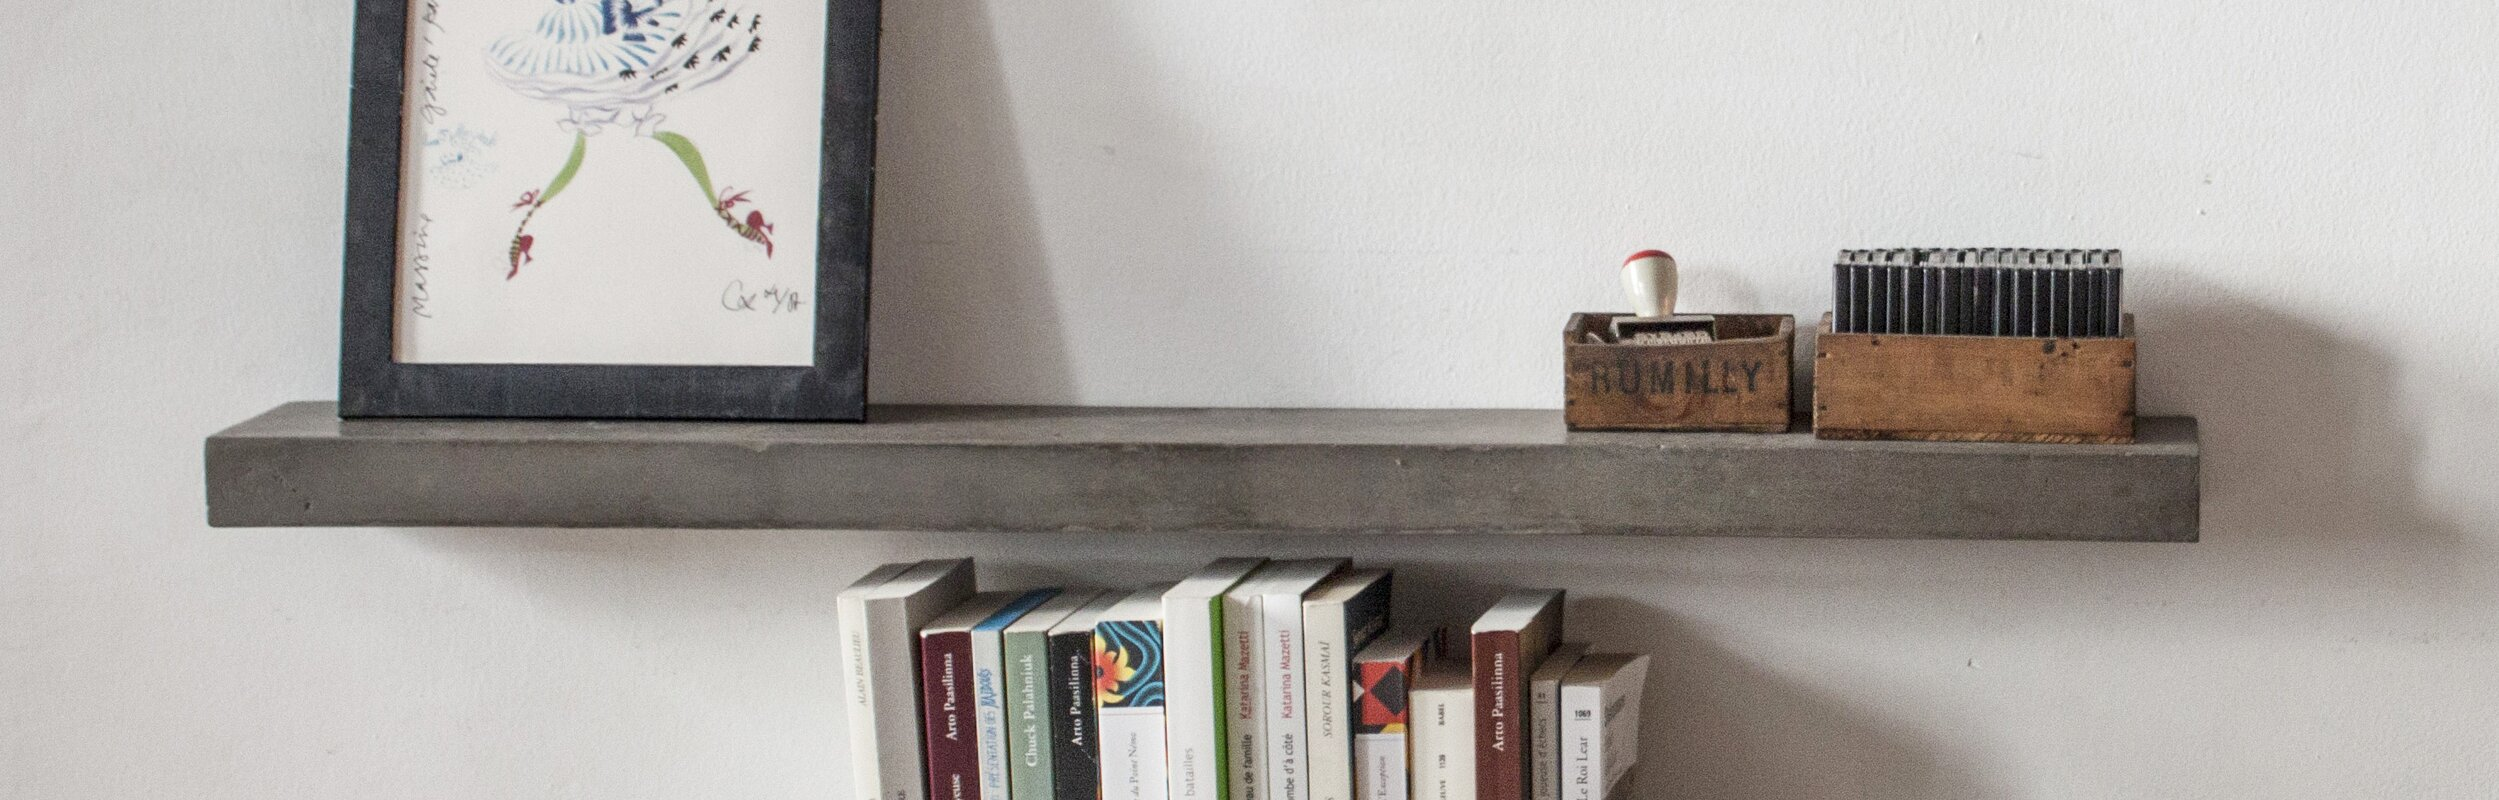 Floating Shelving lyon beton sliced concrete floating shelf & reviews | wayfair